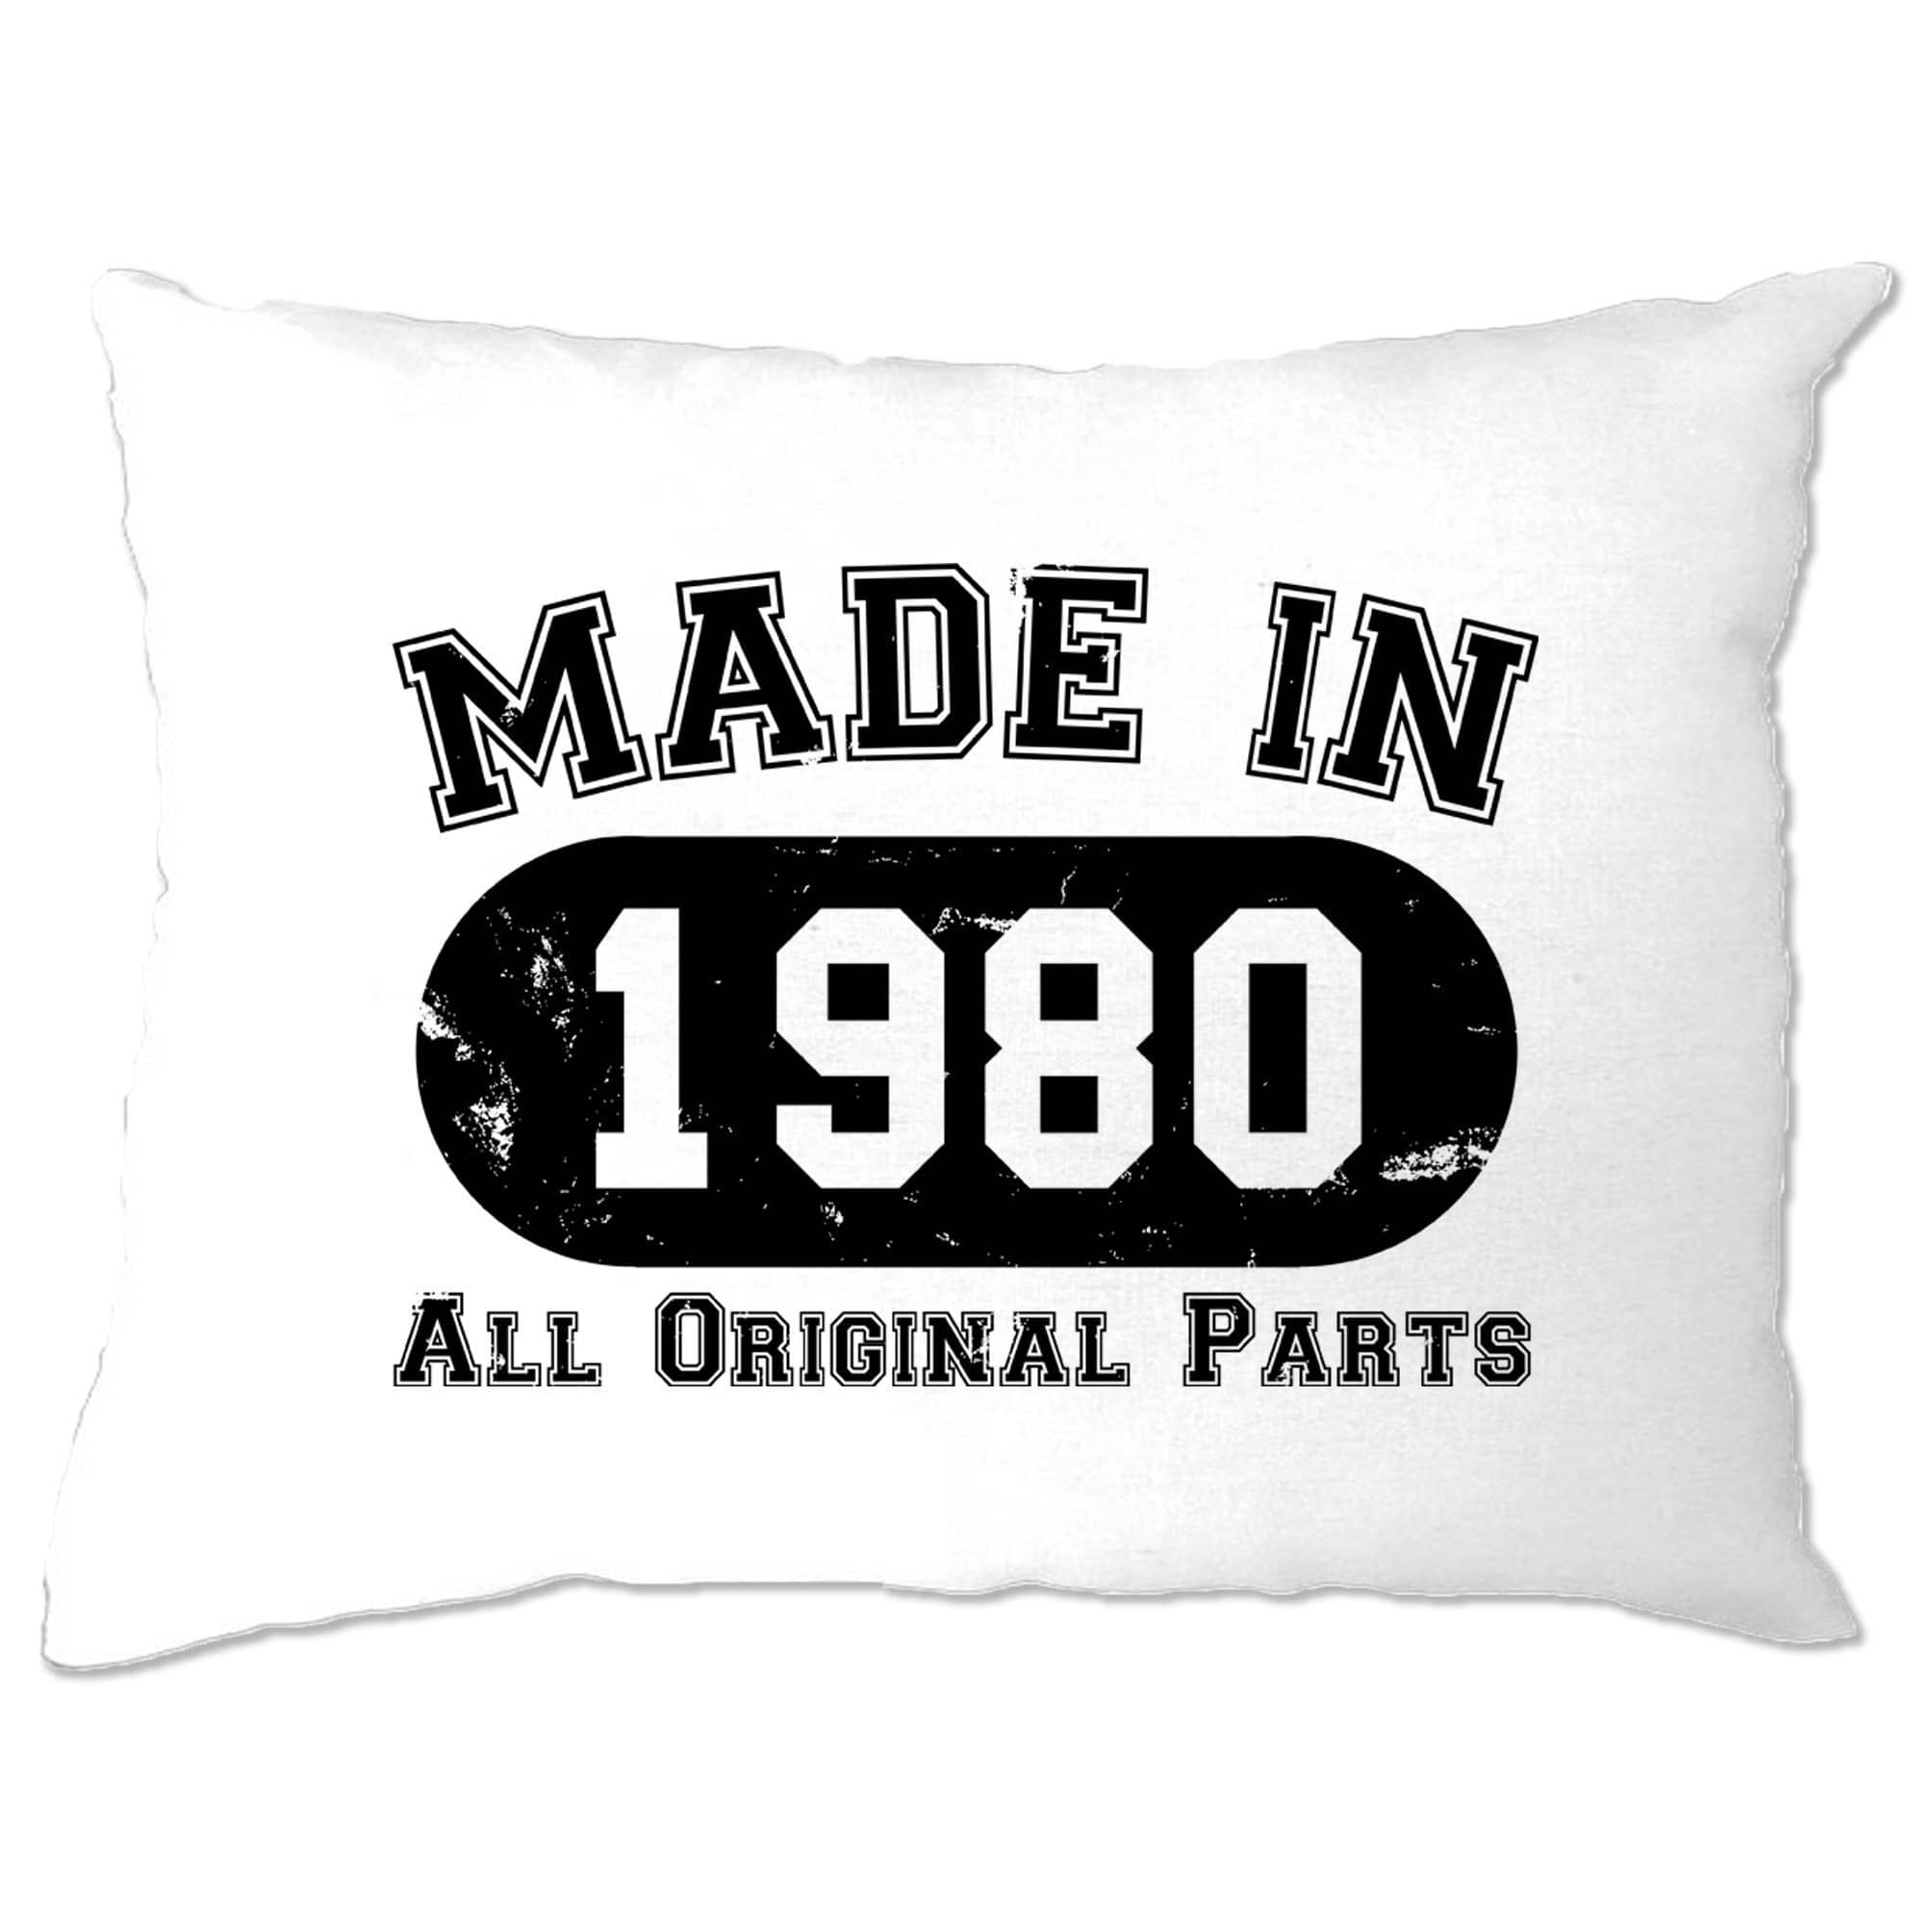 Made in 1980 All Original Parts Pillow Case [Distressed]